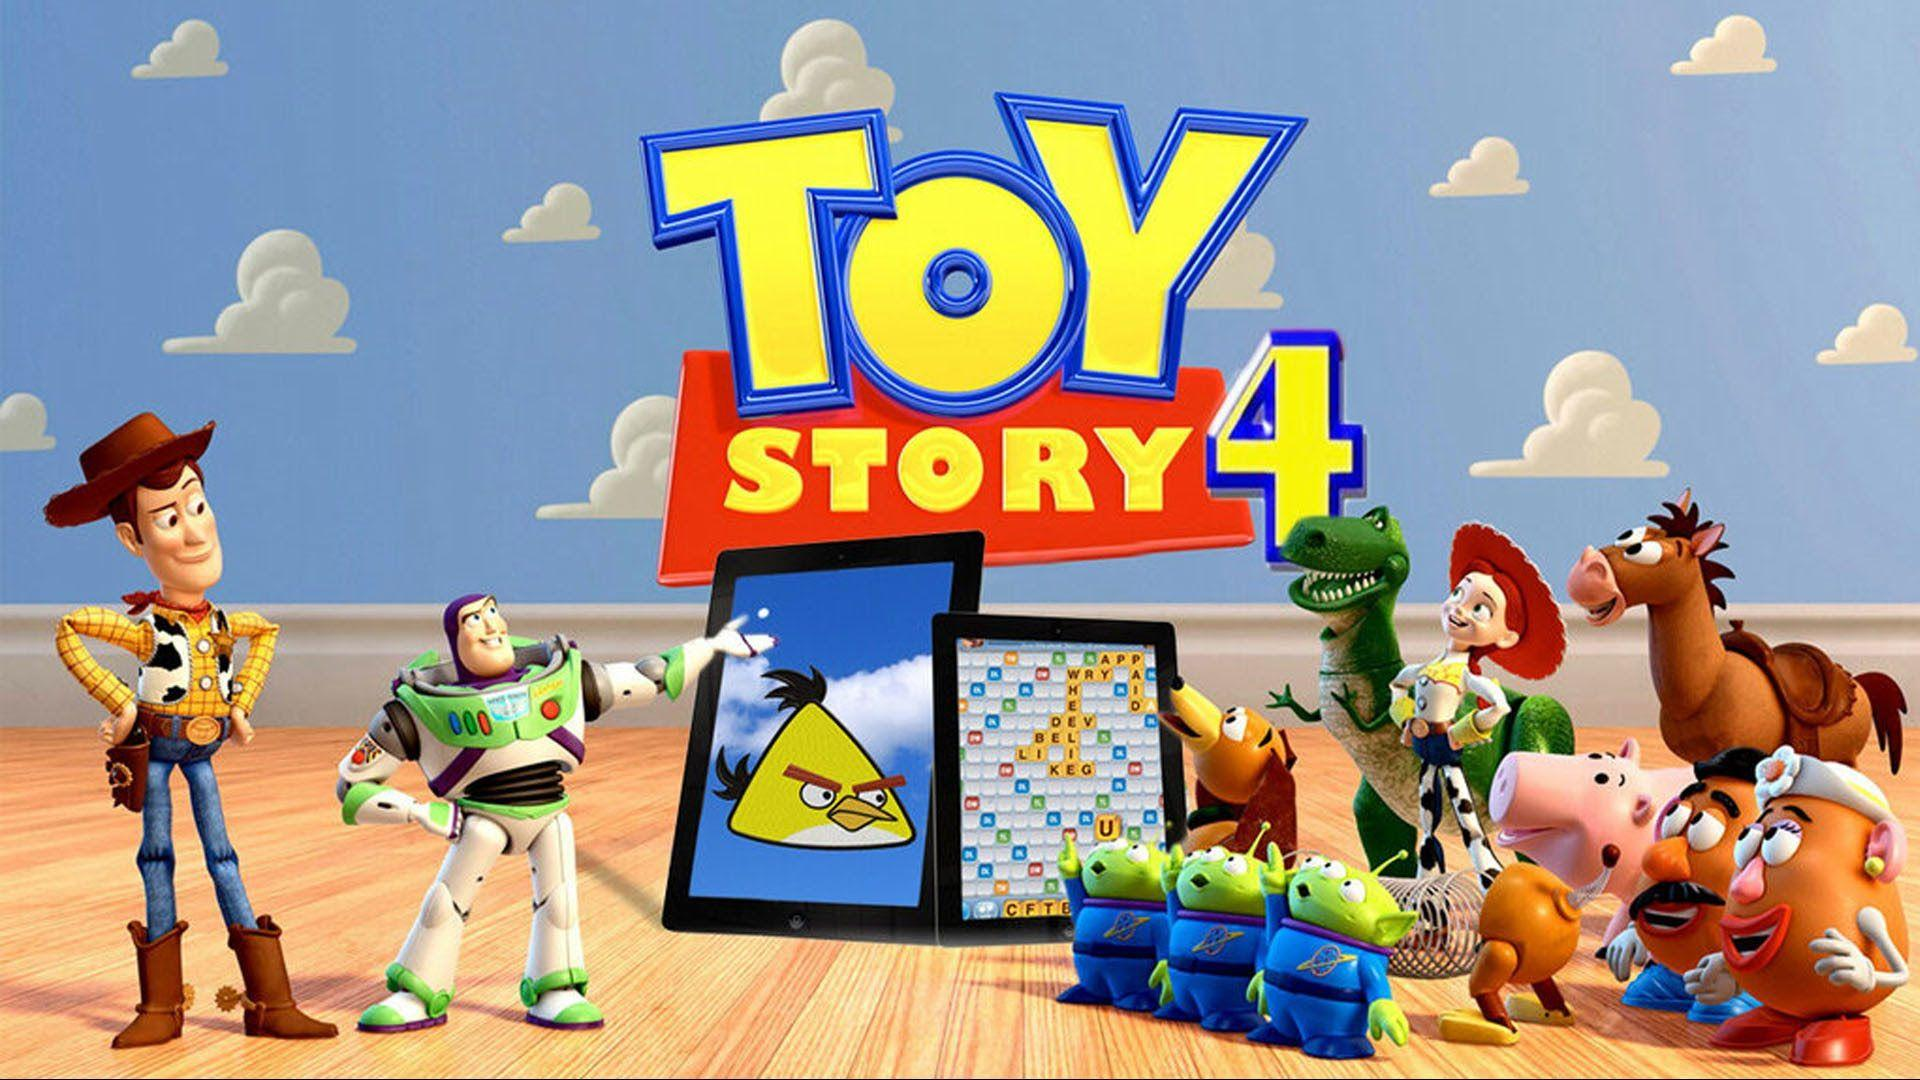 Toy Story 4 HD wallpapers free download